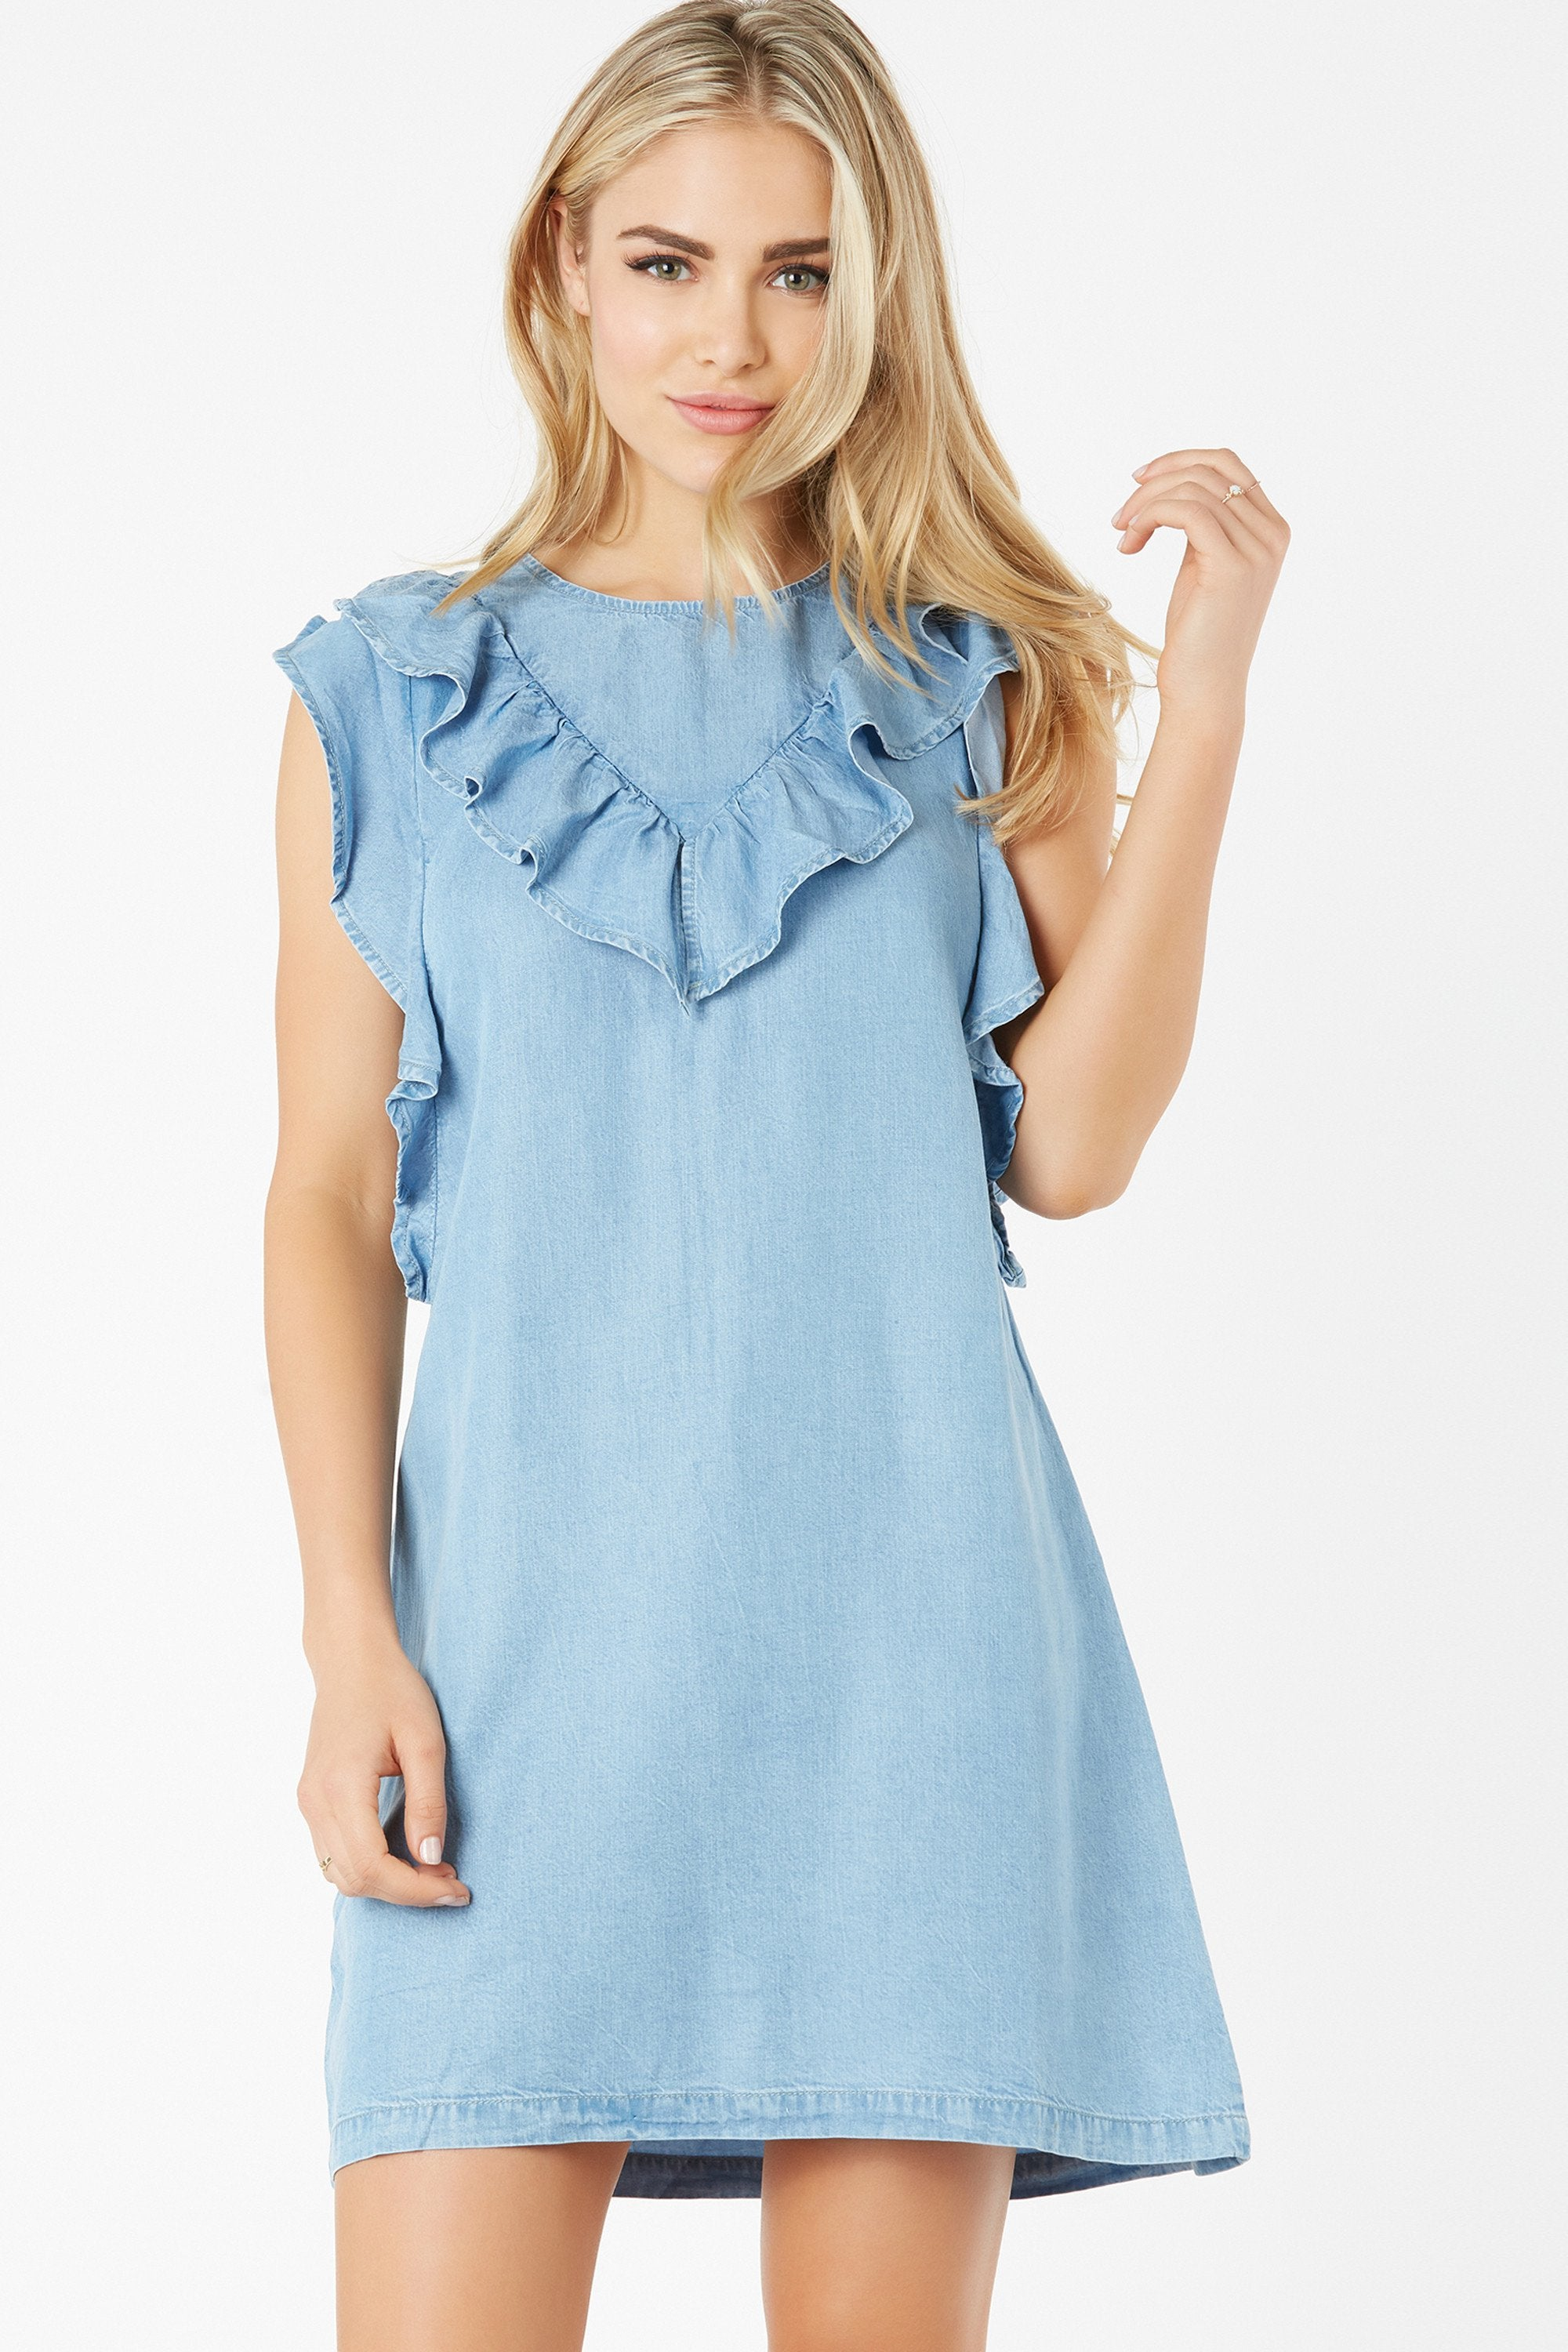 Denim Daze Ruffle Dress